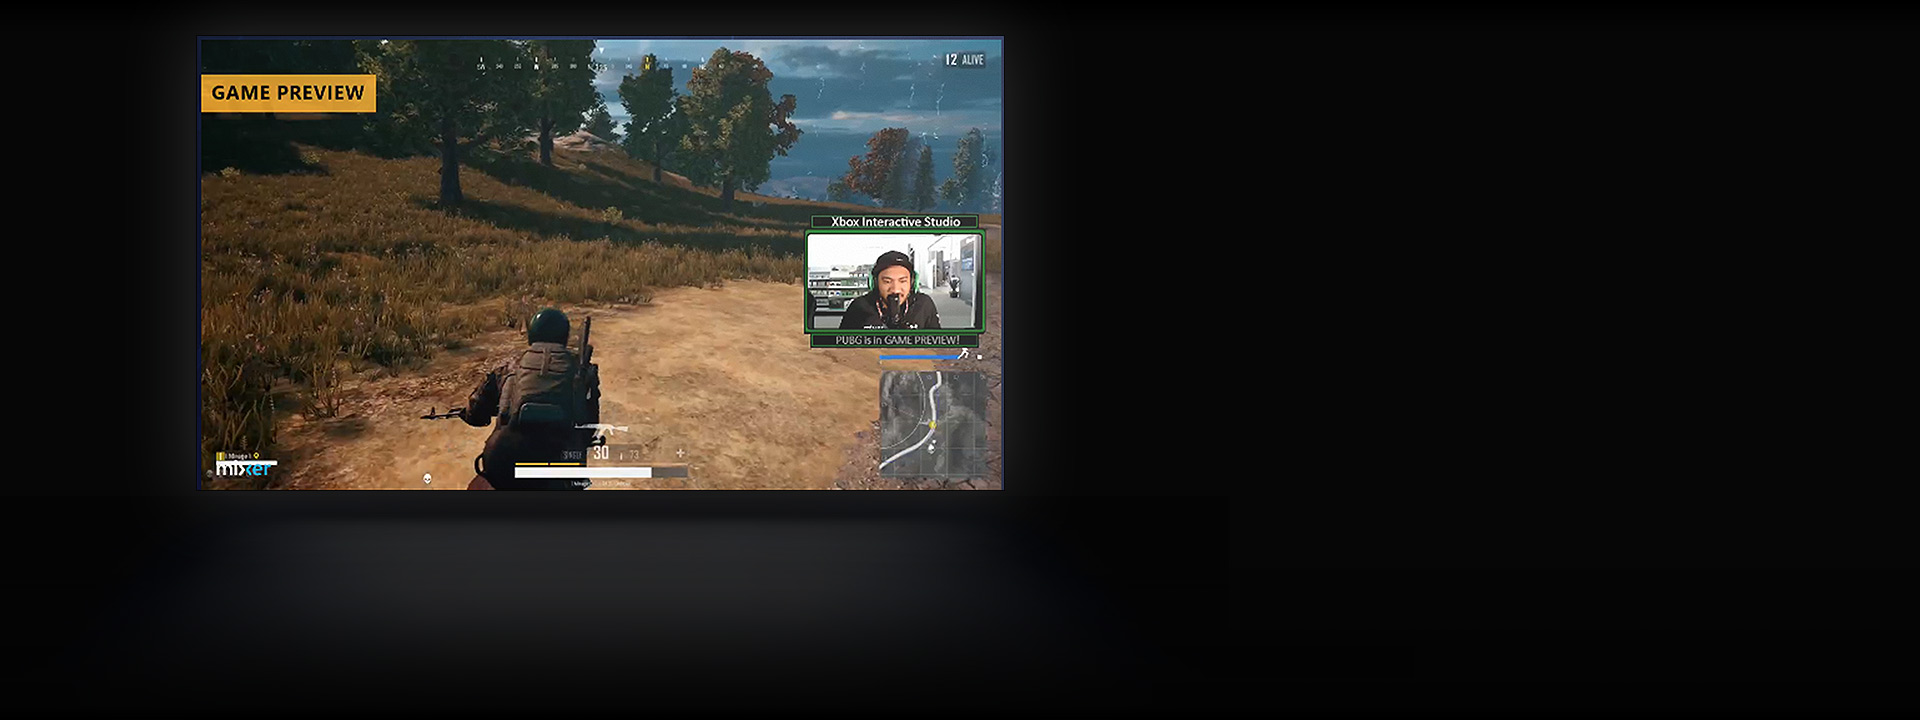 Television screen showing a Player Unknowns battleground Mixer stream